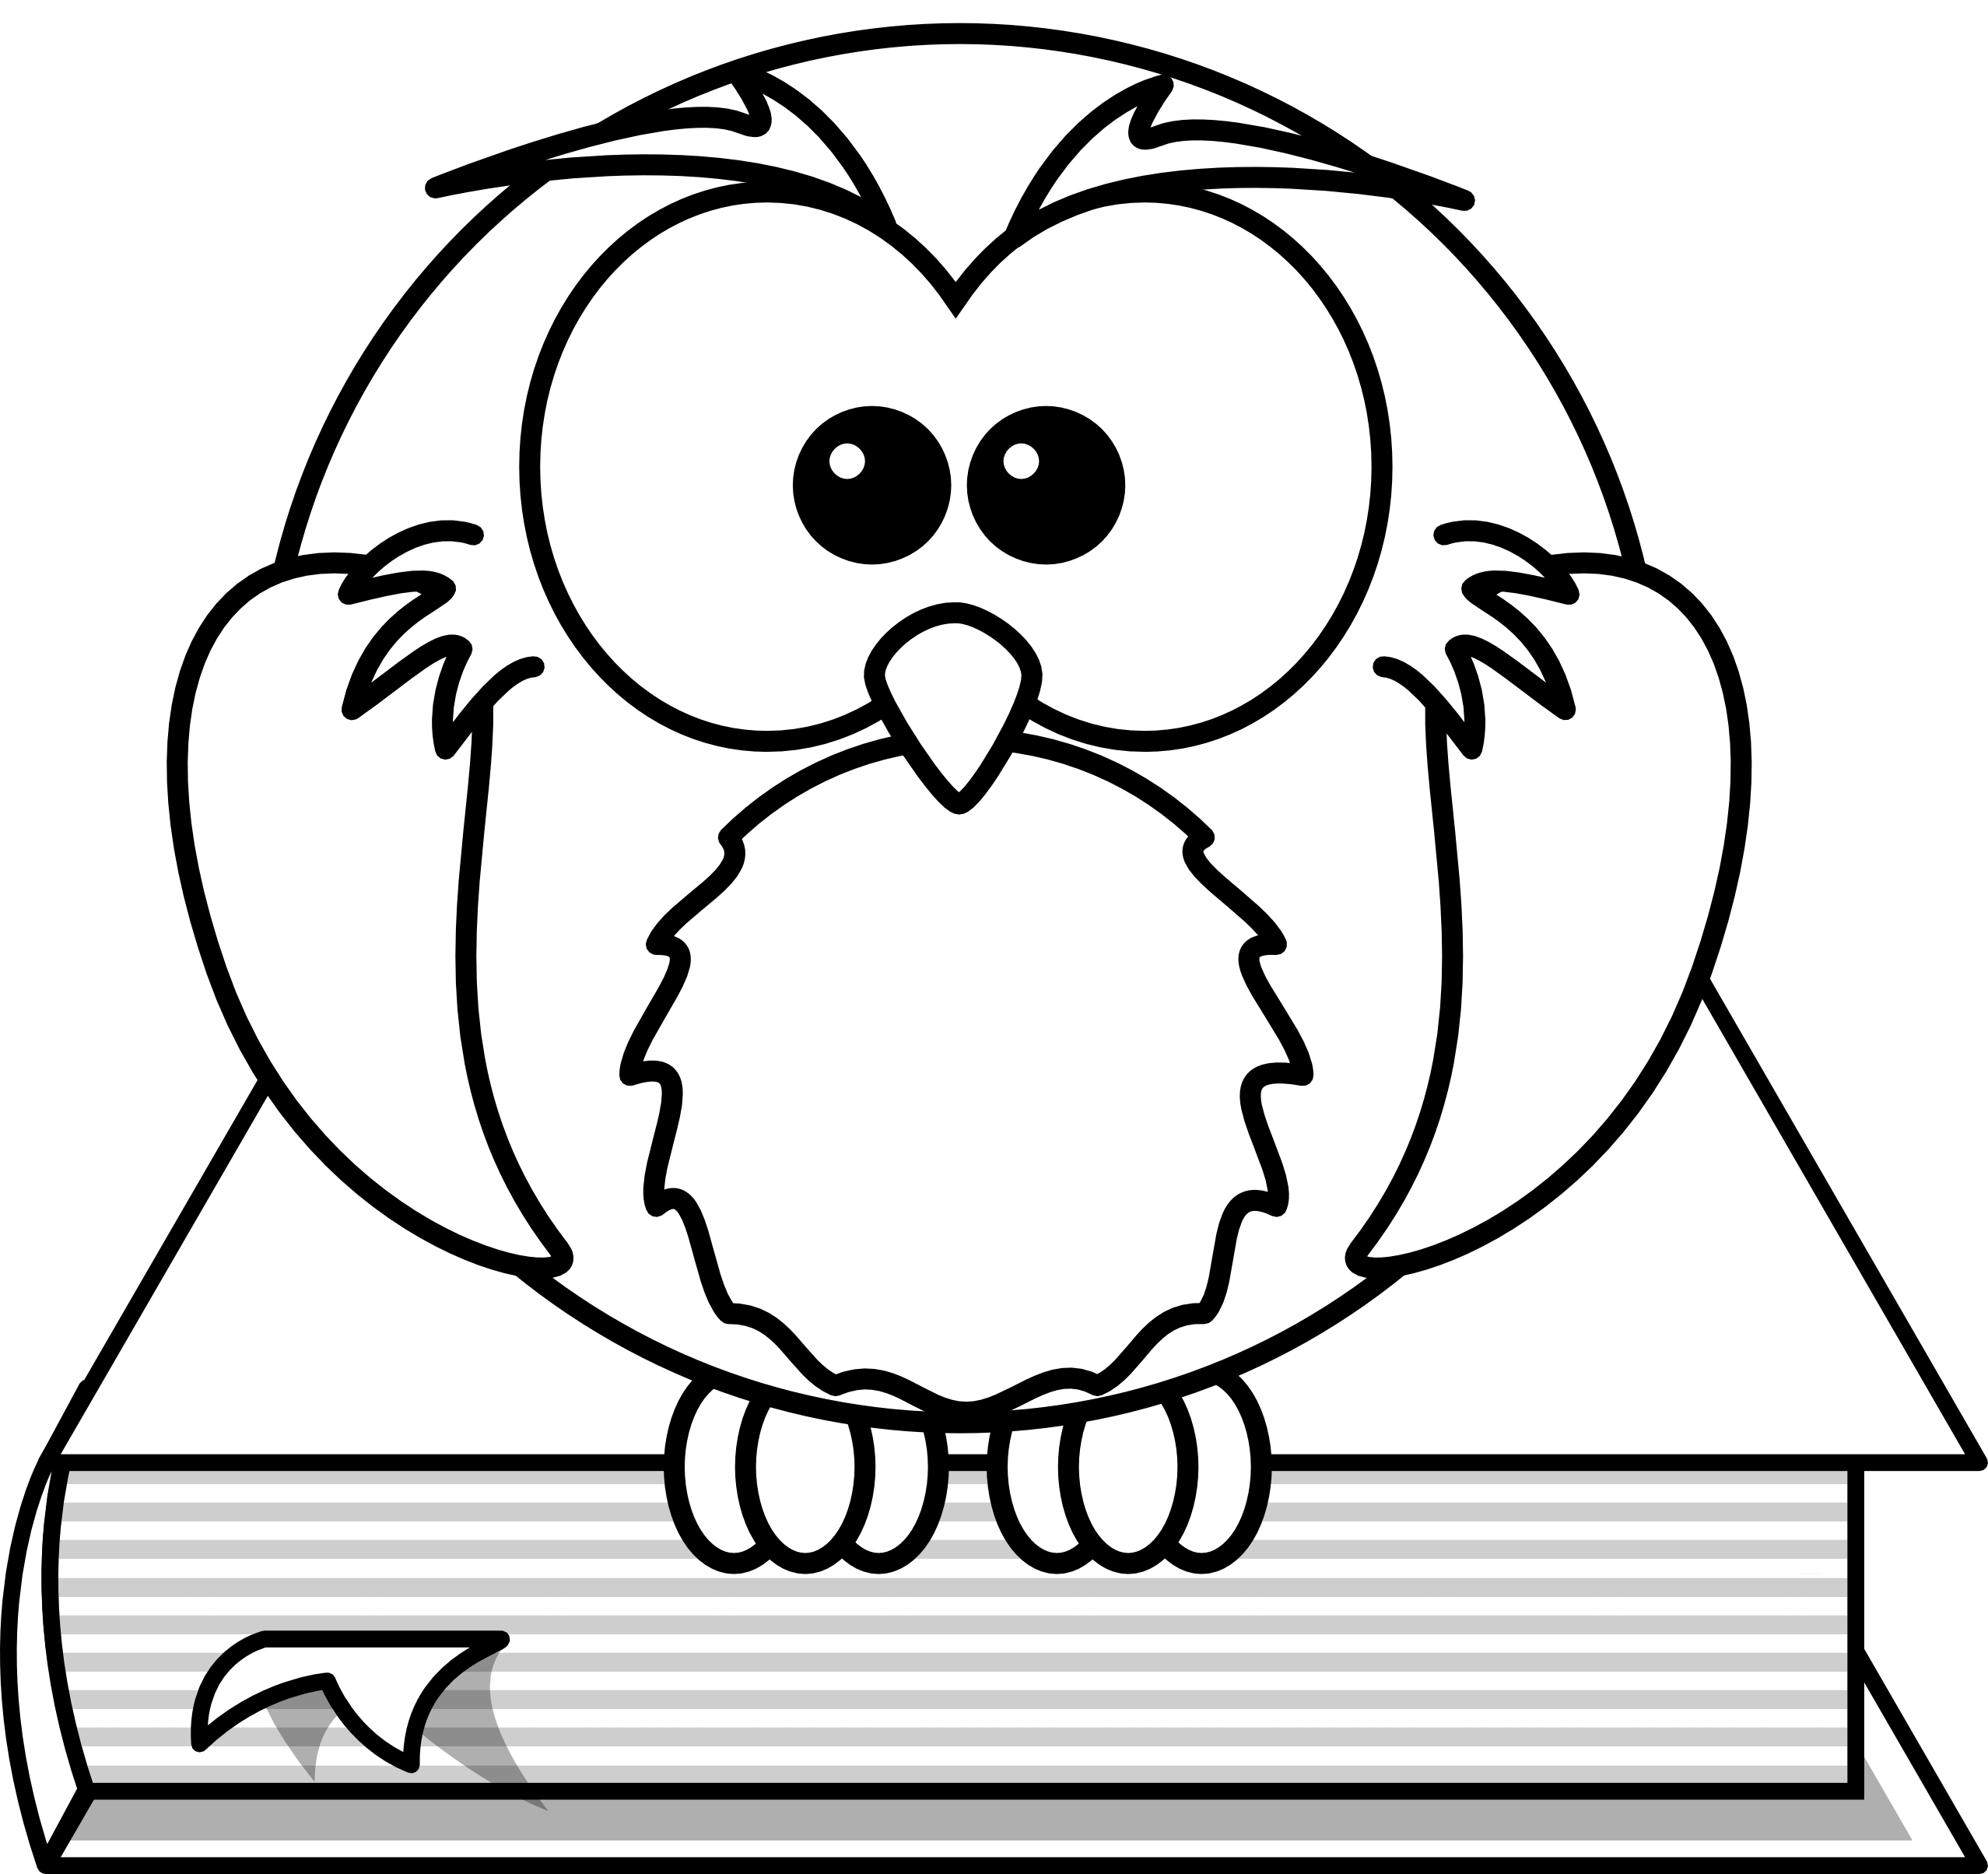 Free Black And White Cartoon Owls, Download Free Clip Art.